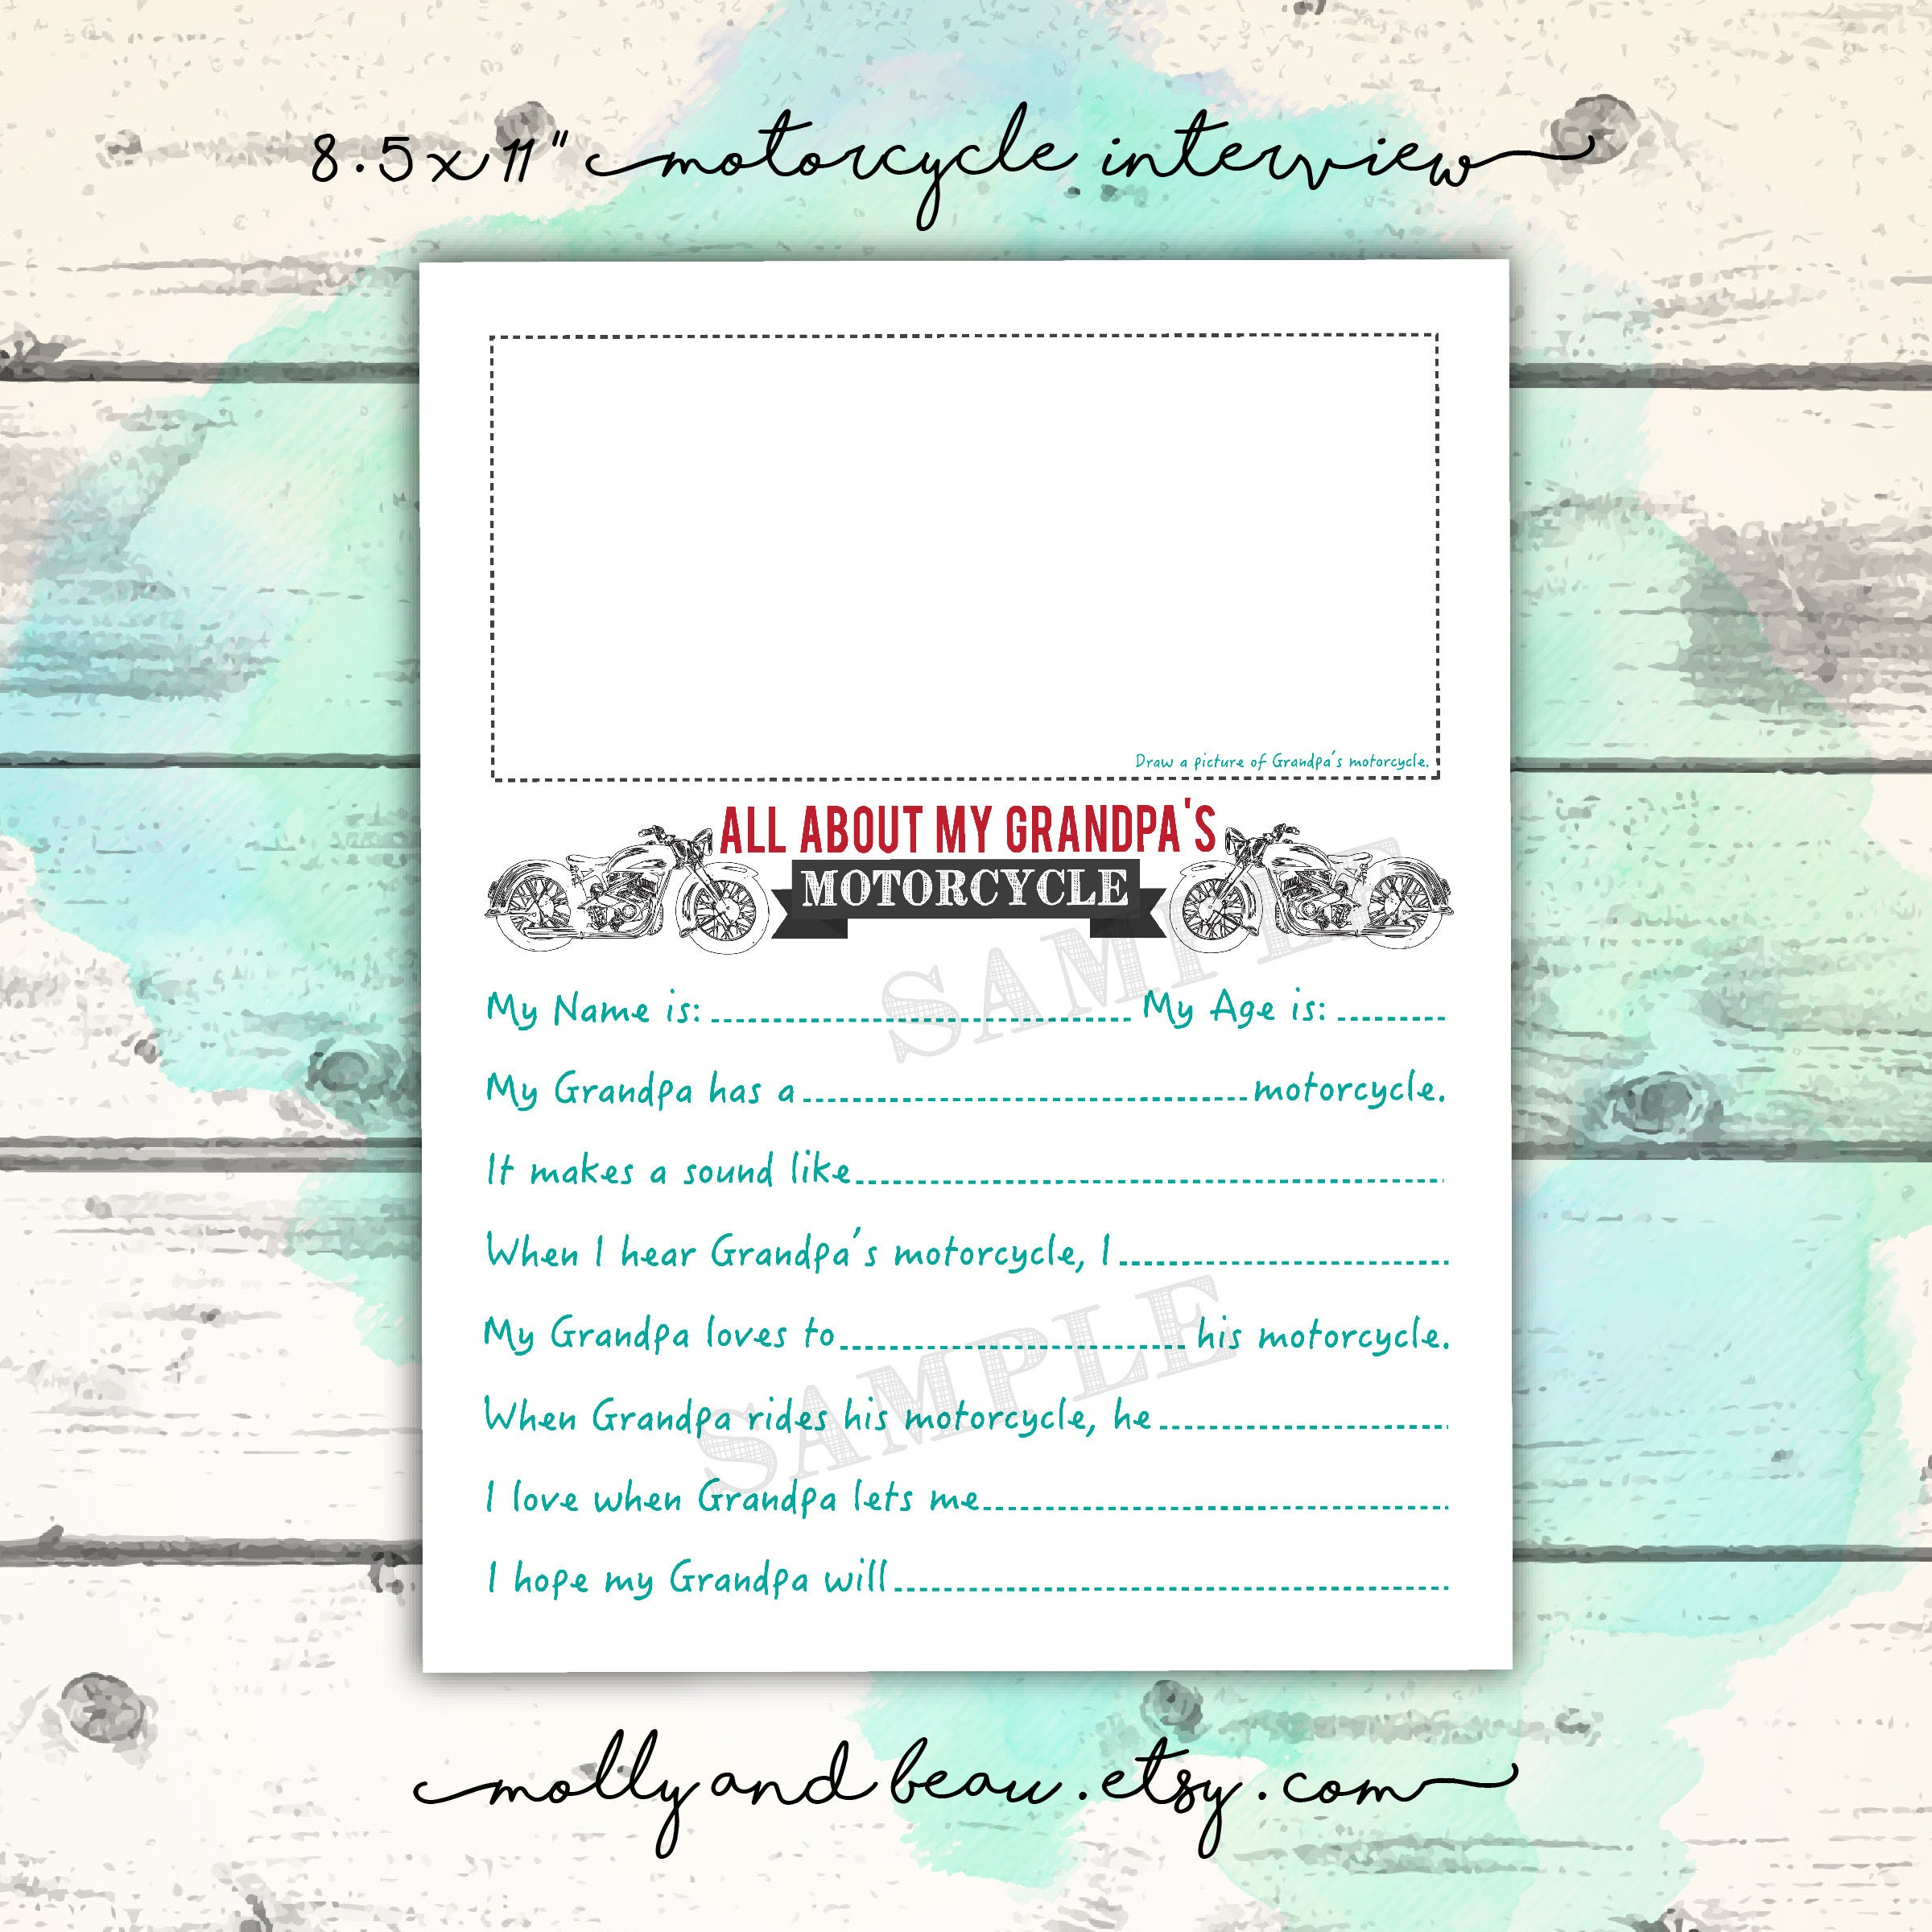 picture regarding Grandpa Questionnaire Printable identified as Motorbike Grandpa, Fathers Working day Printable, My Grandpa Rides a Bike, Grandpa Motorbike Questionnaire, Harley Grandpa Bike Reward